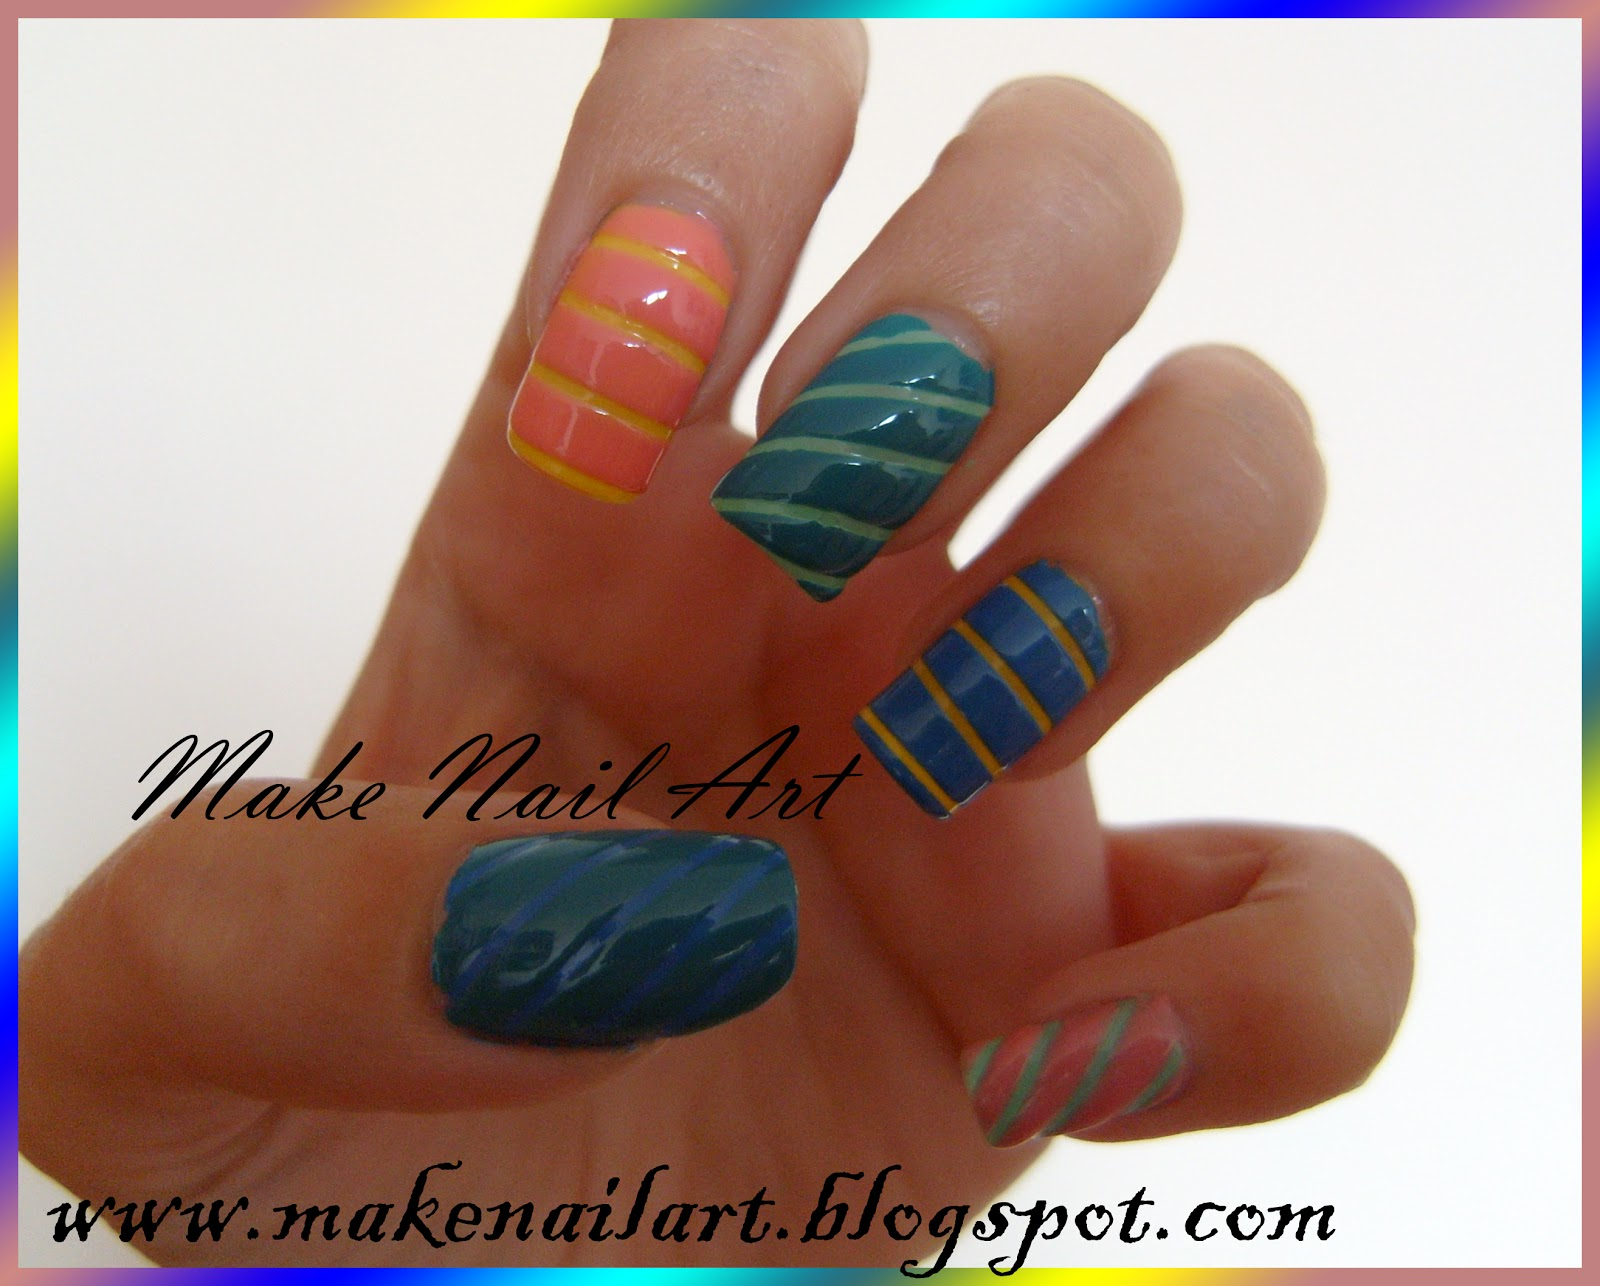 NailArt 101: Nail Design Tape